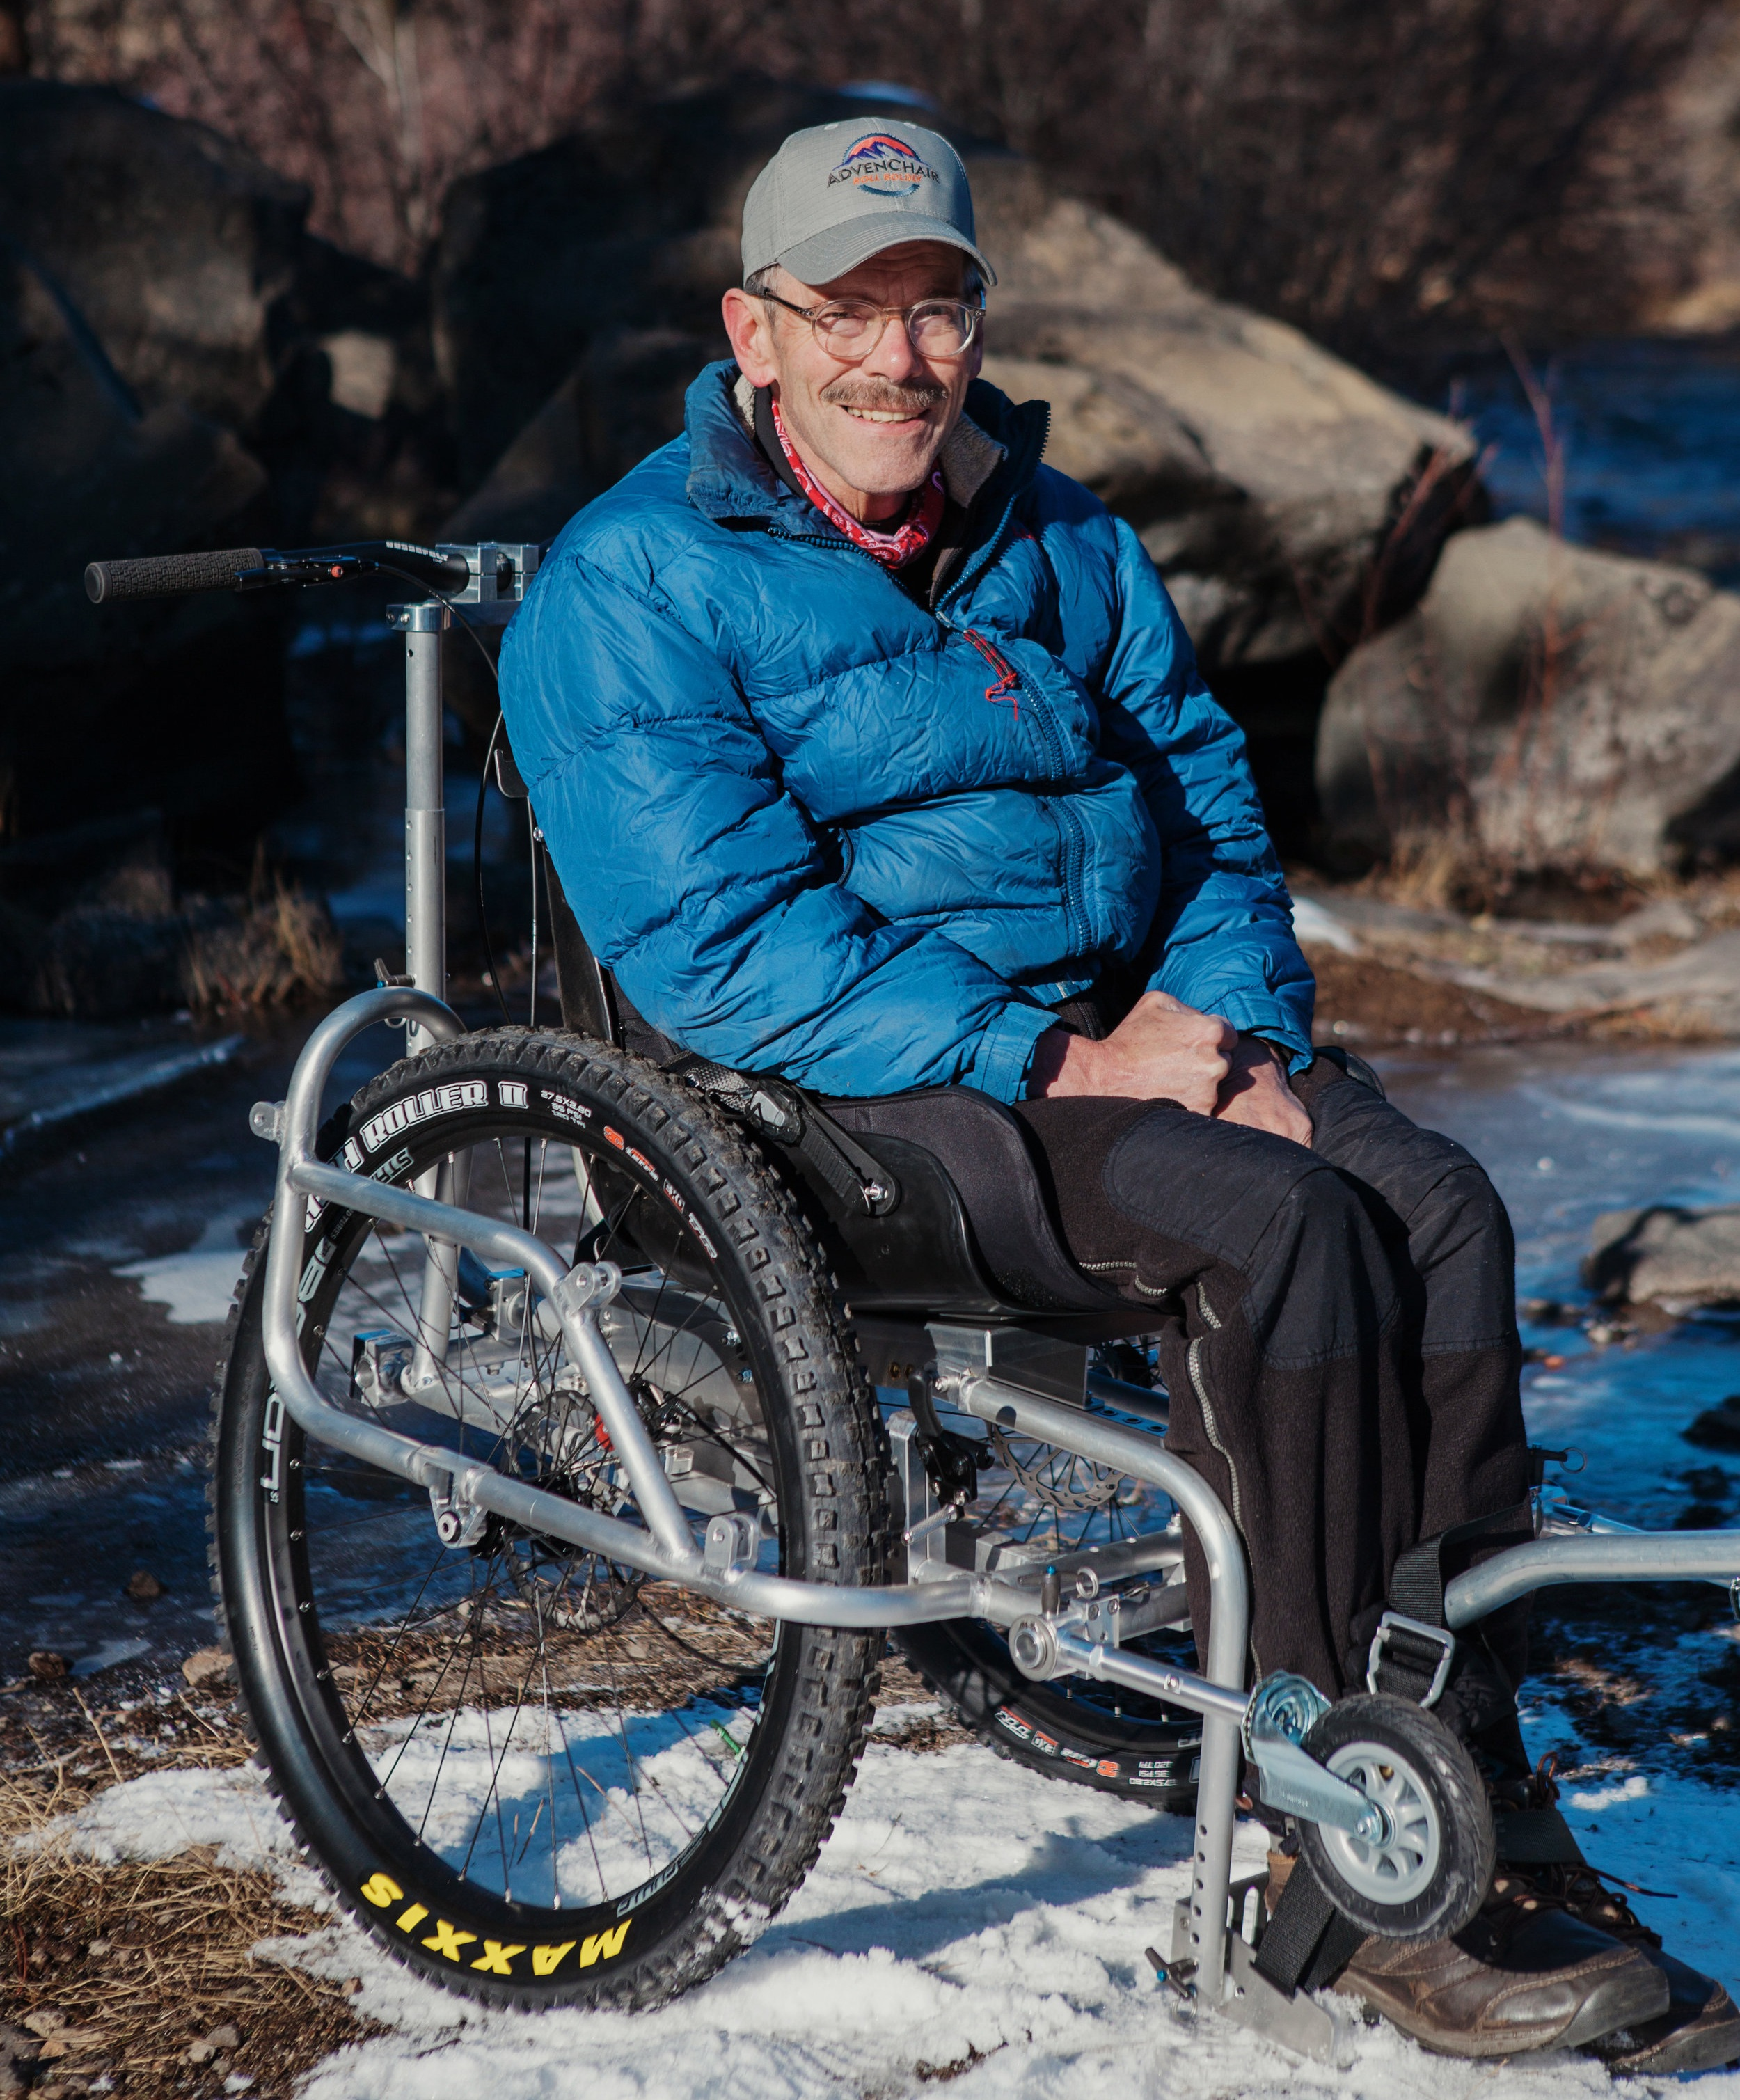 The AdvenChair, created by  Geoff Babb and Dale Neubaurer , is an all-terrain wheelchair designed to go off-road.